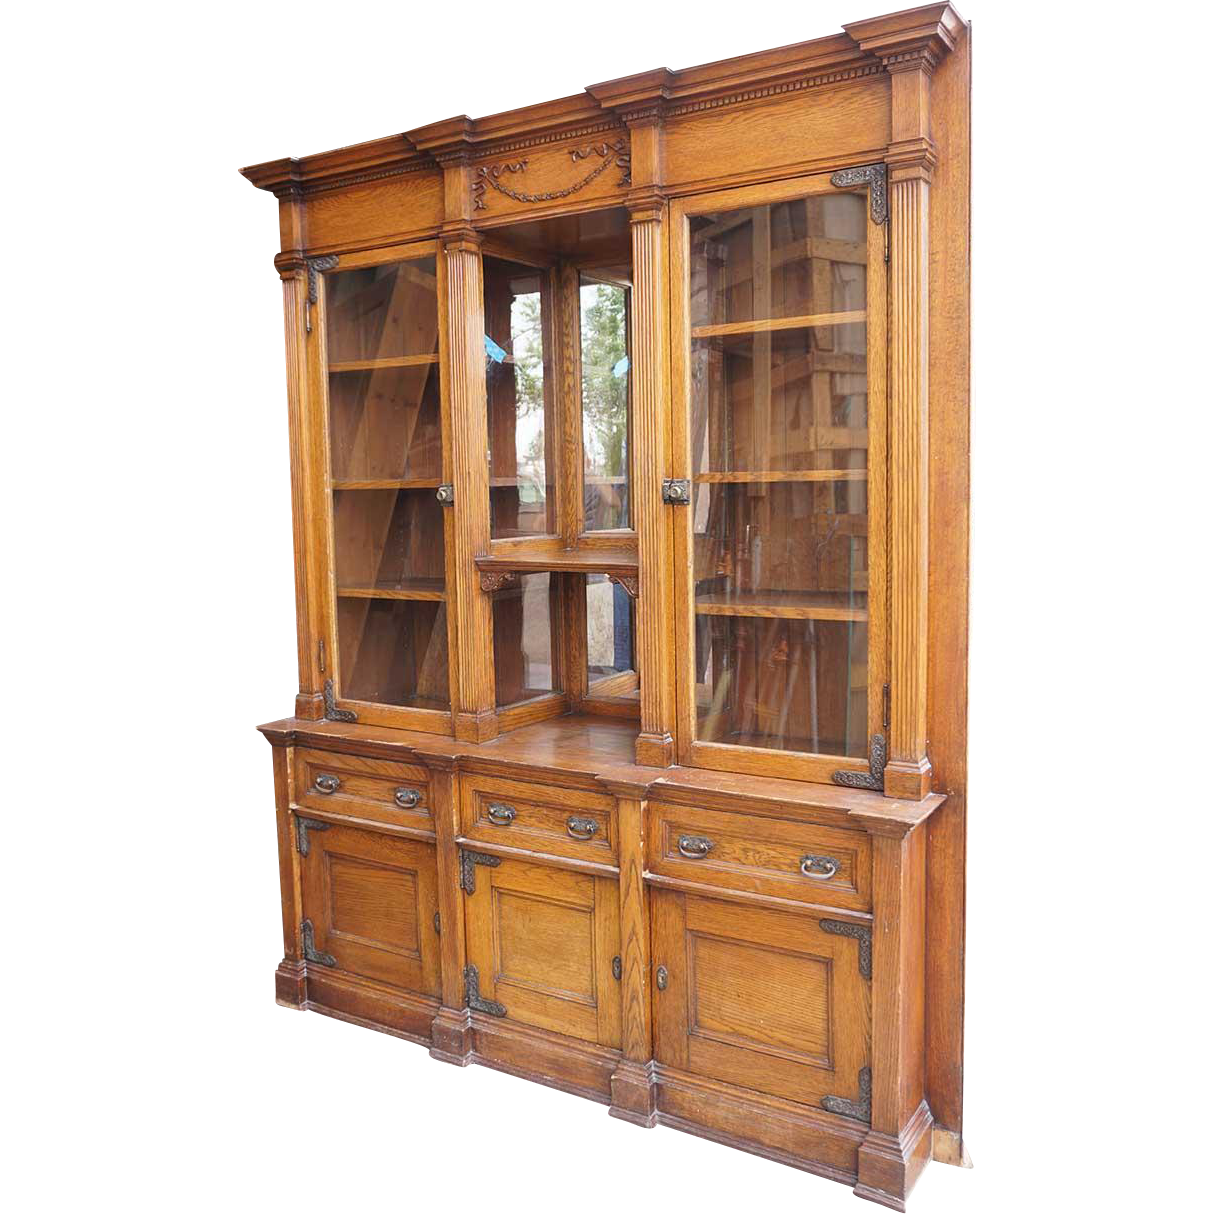 Victorian Oak Glazed Door Built-In Bookcase Display Cabinet